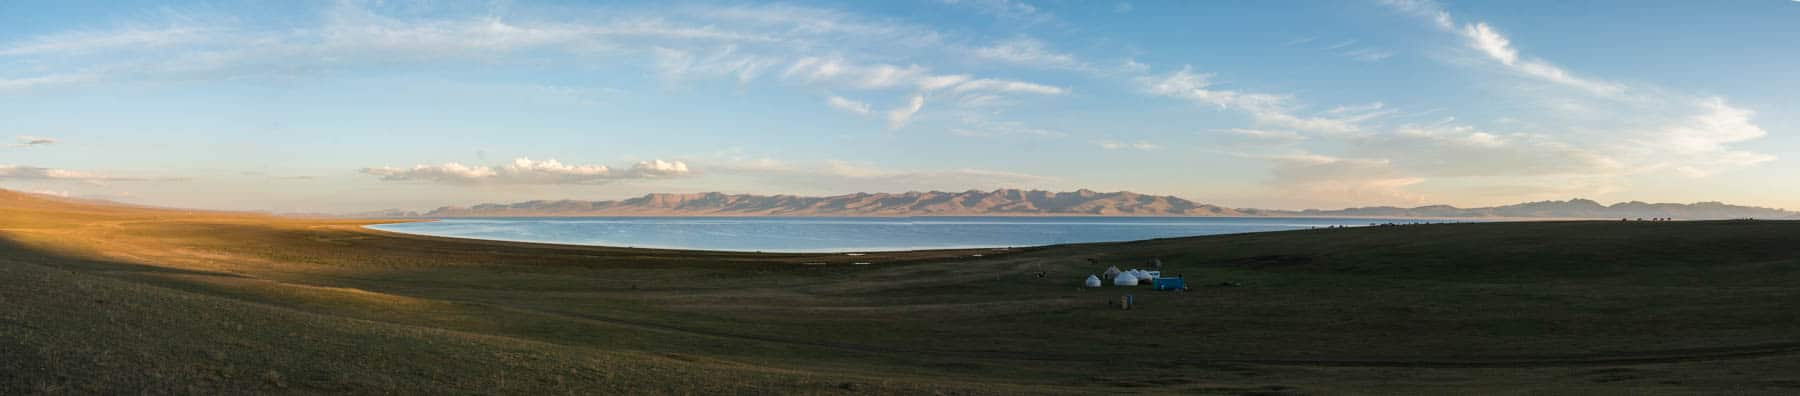 Sunset over a yurt camp at Song Kul lake in Kyrgyzstan - Lost With Purpose